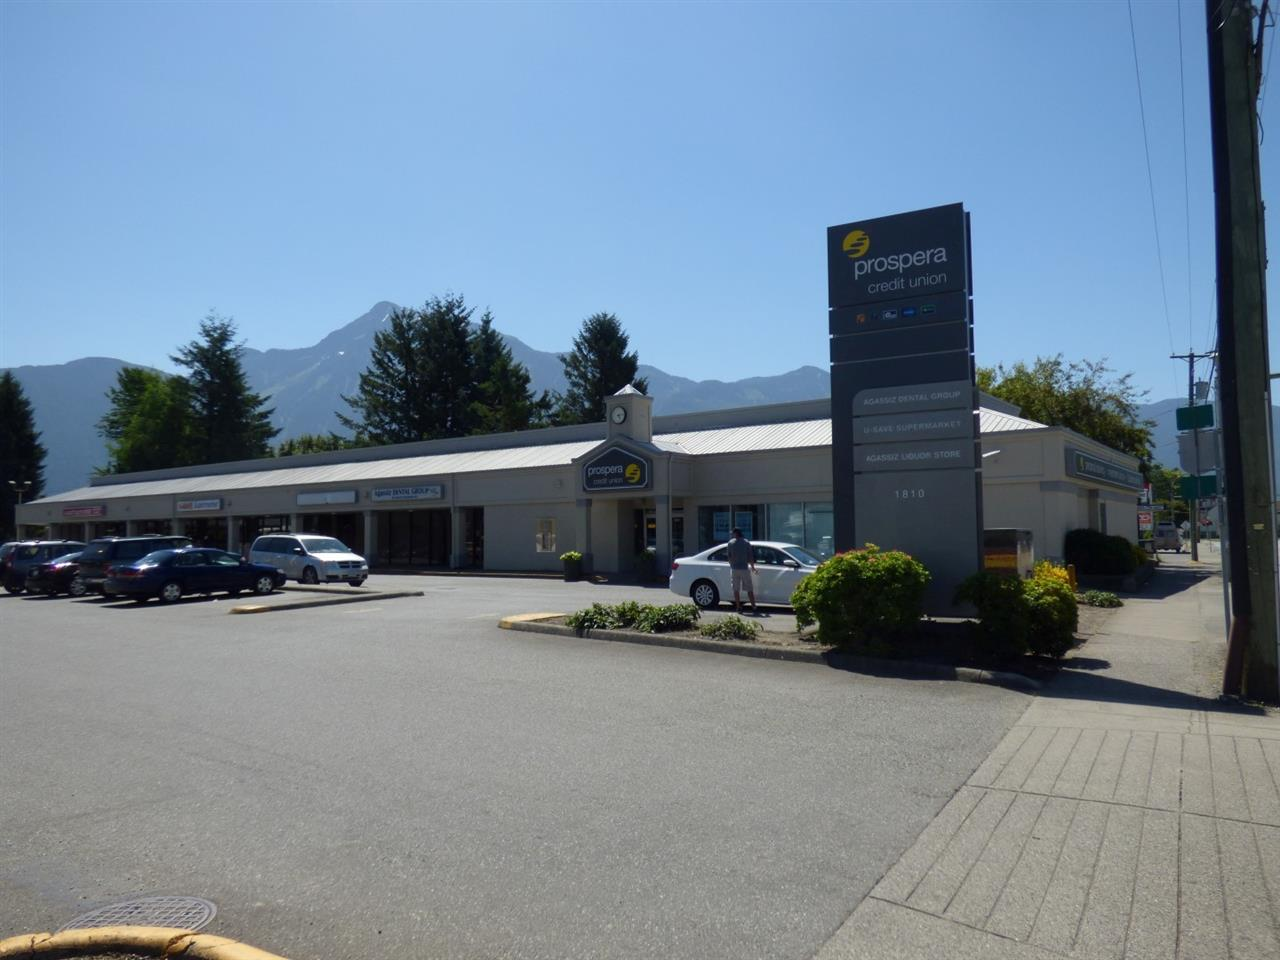 Main Photo: 1810 AGASSIZ-ROSEDALE Highway: Agassiz Retail for lease : MLS®# C8010629